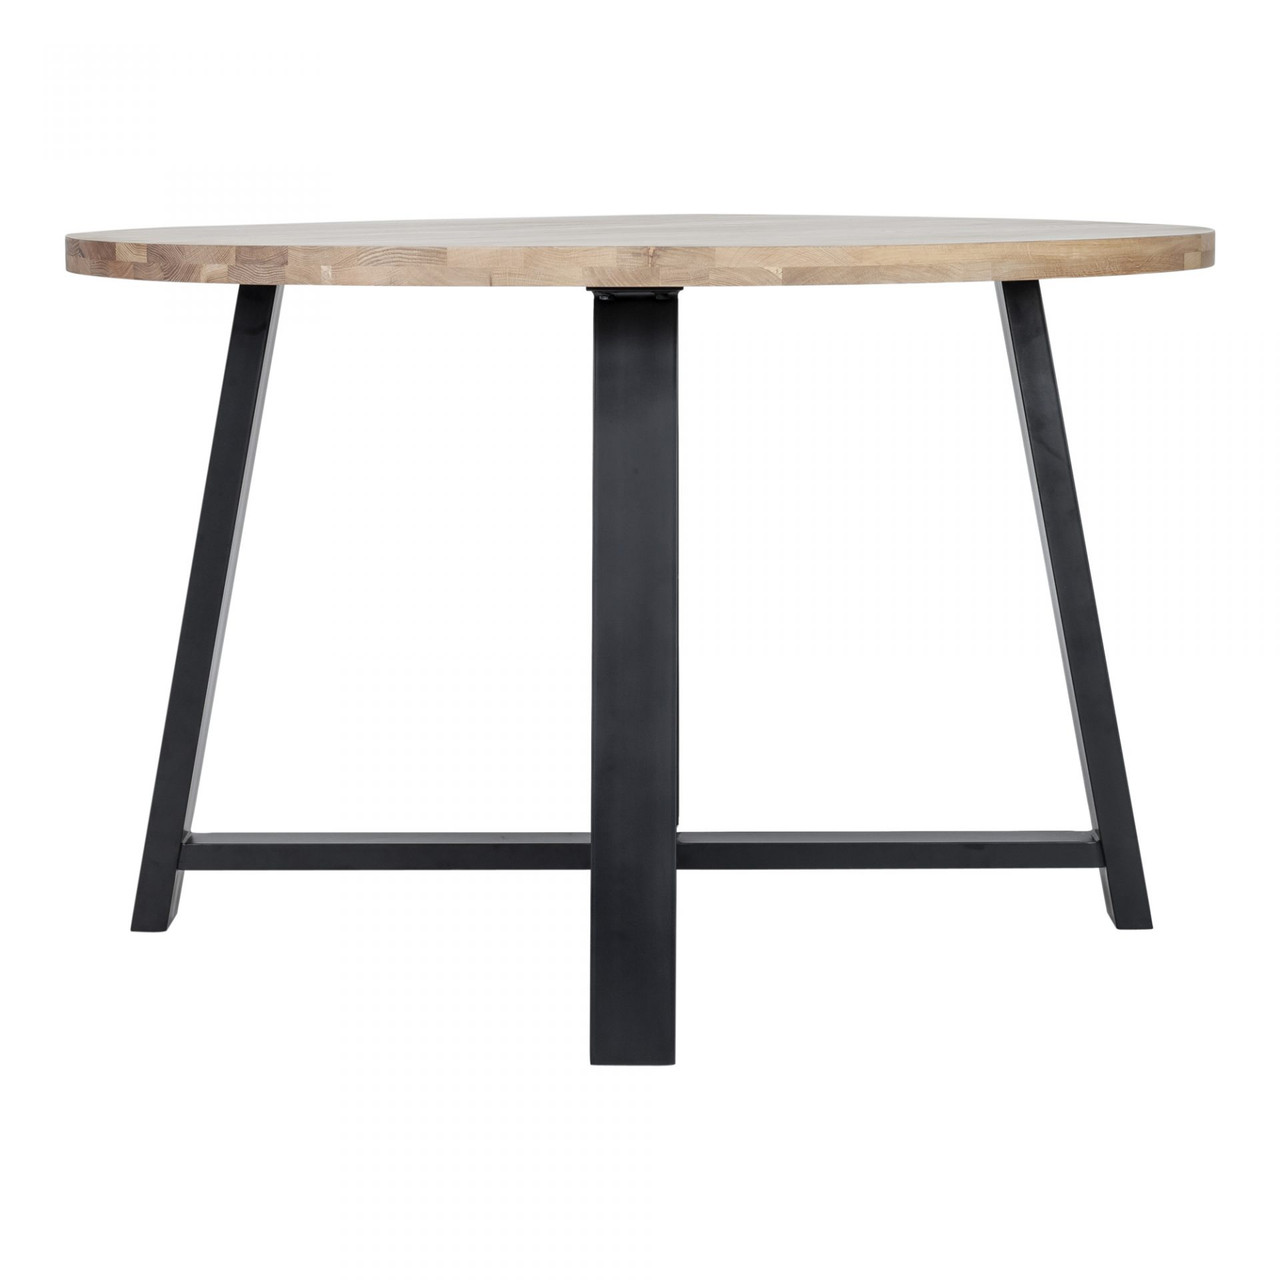 Baion Round Dining Table